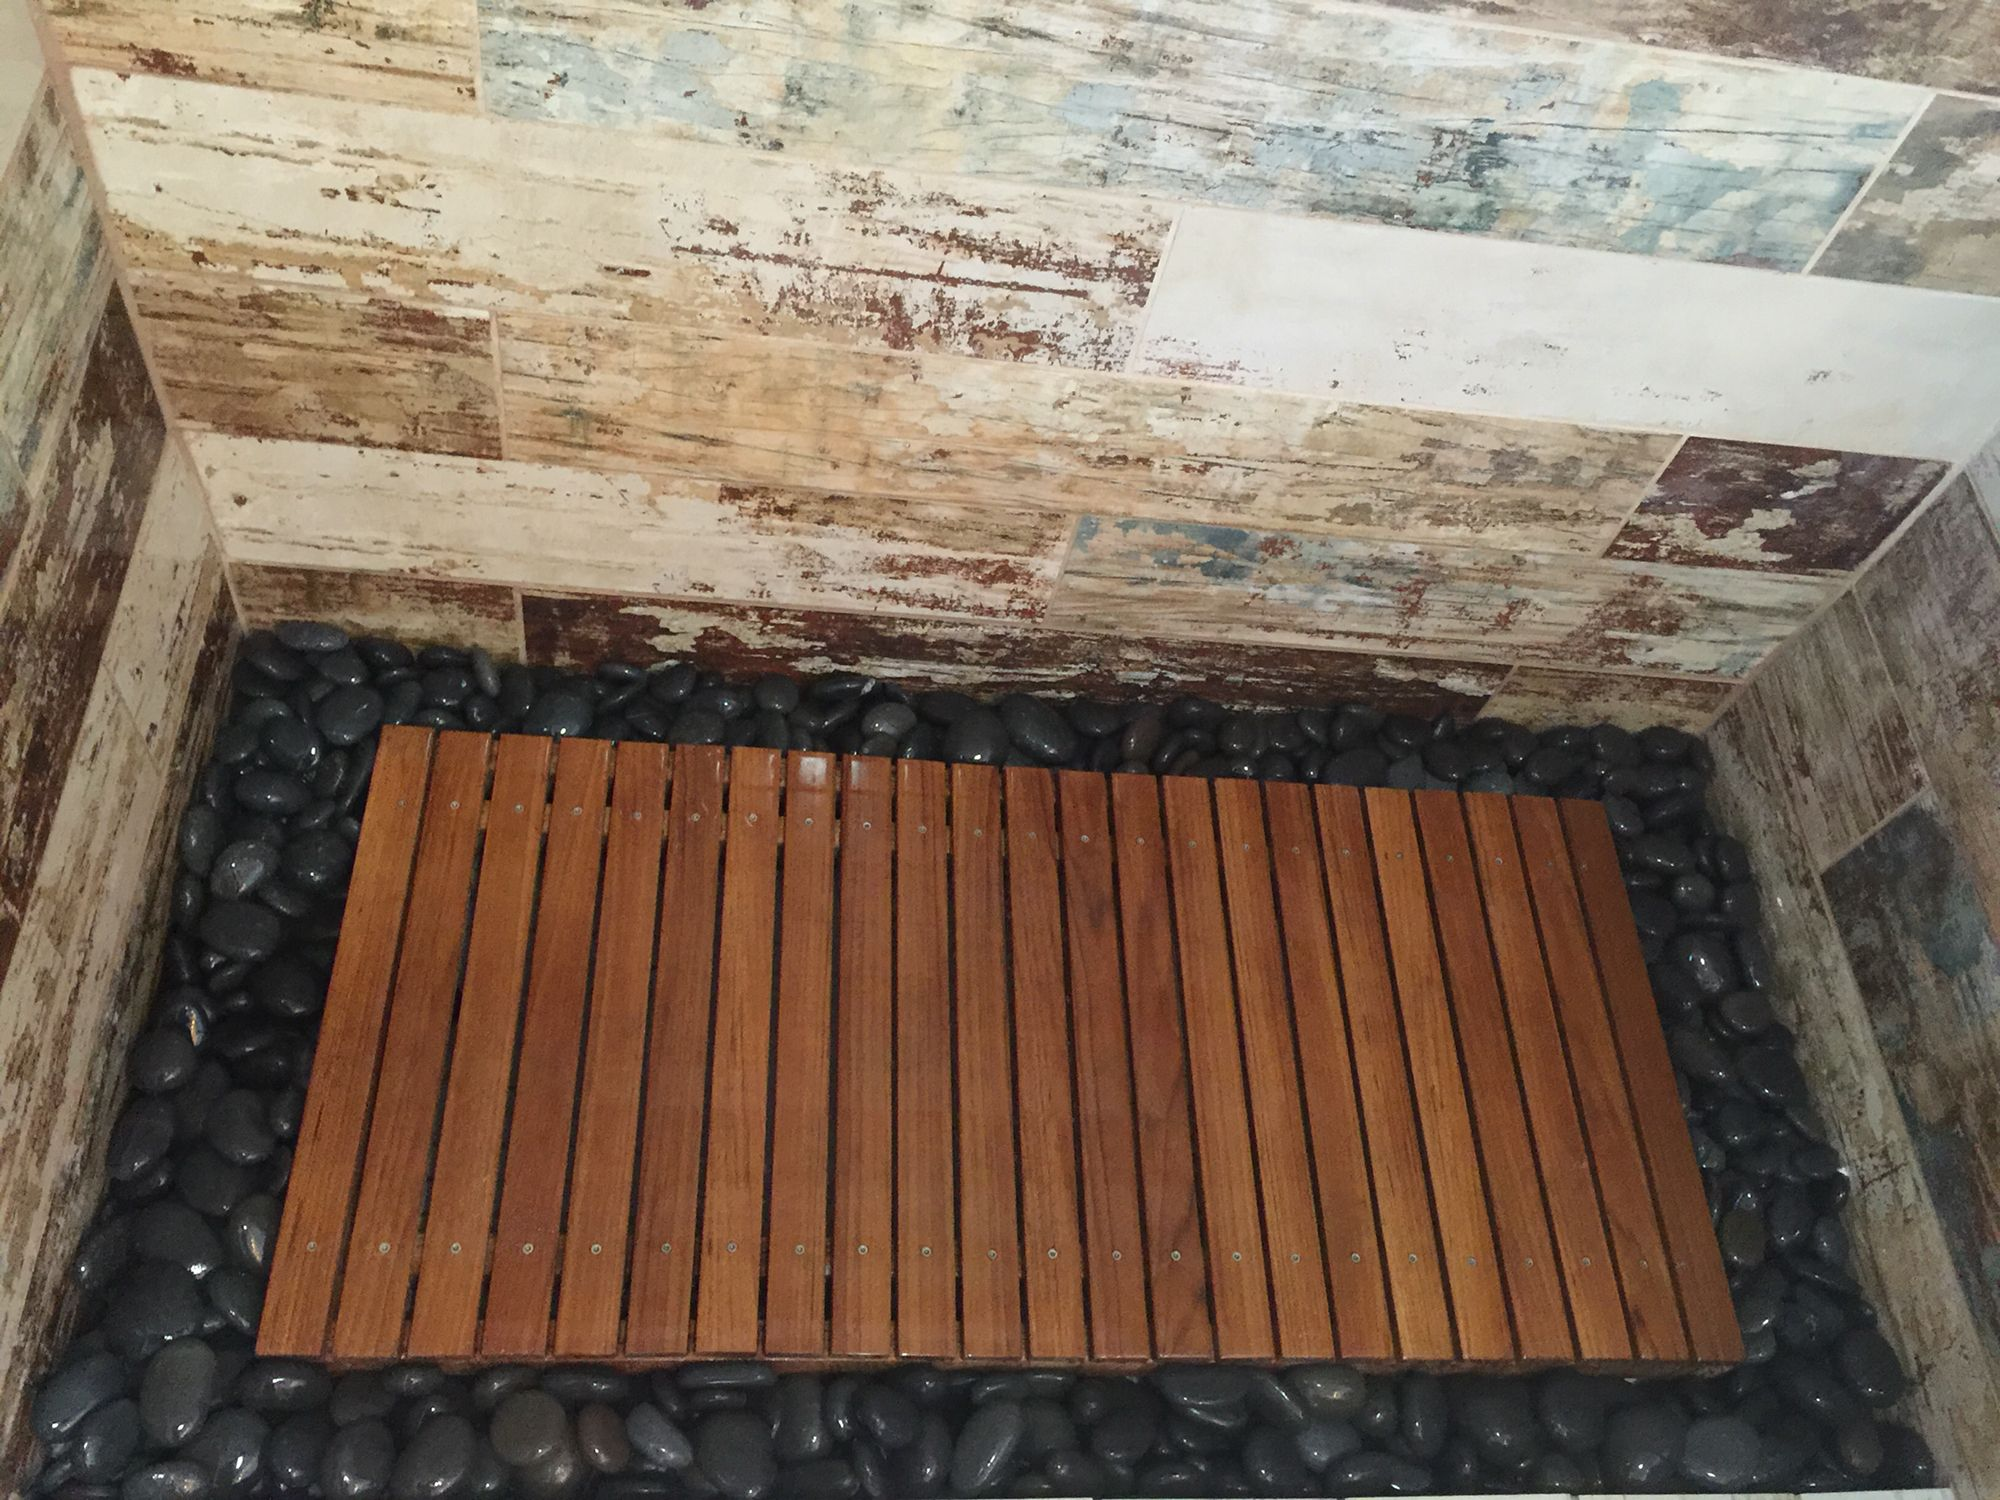 Teak Wood Shower Floor Surrounded By River Rock Walls